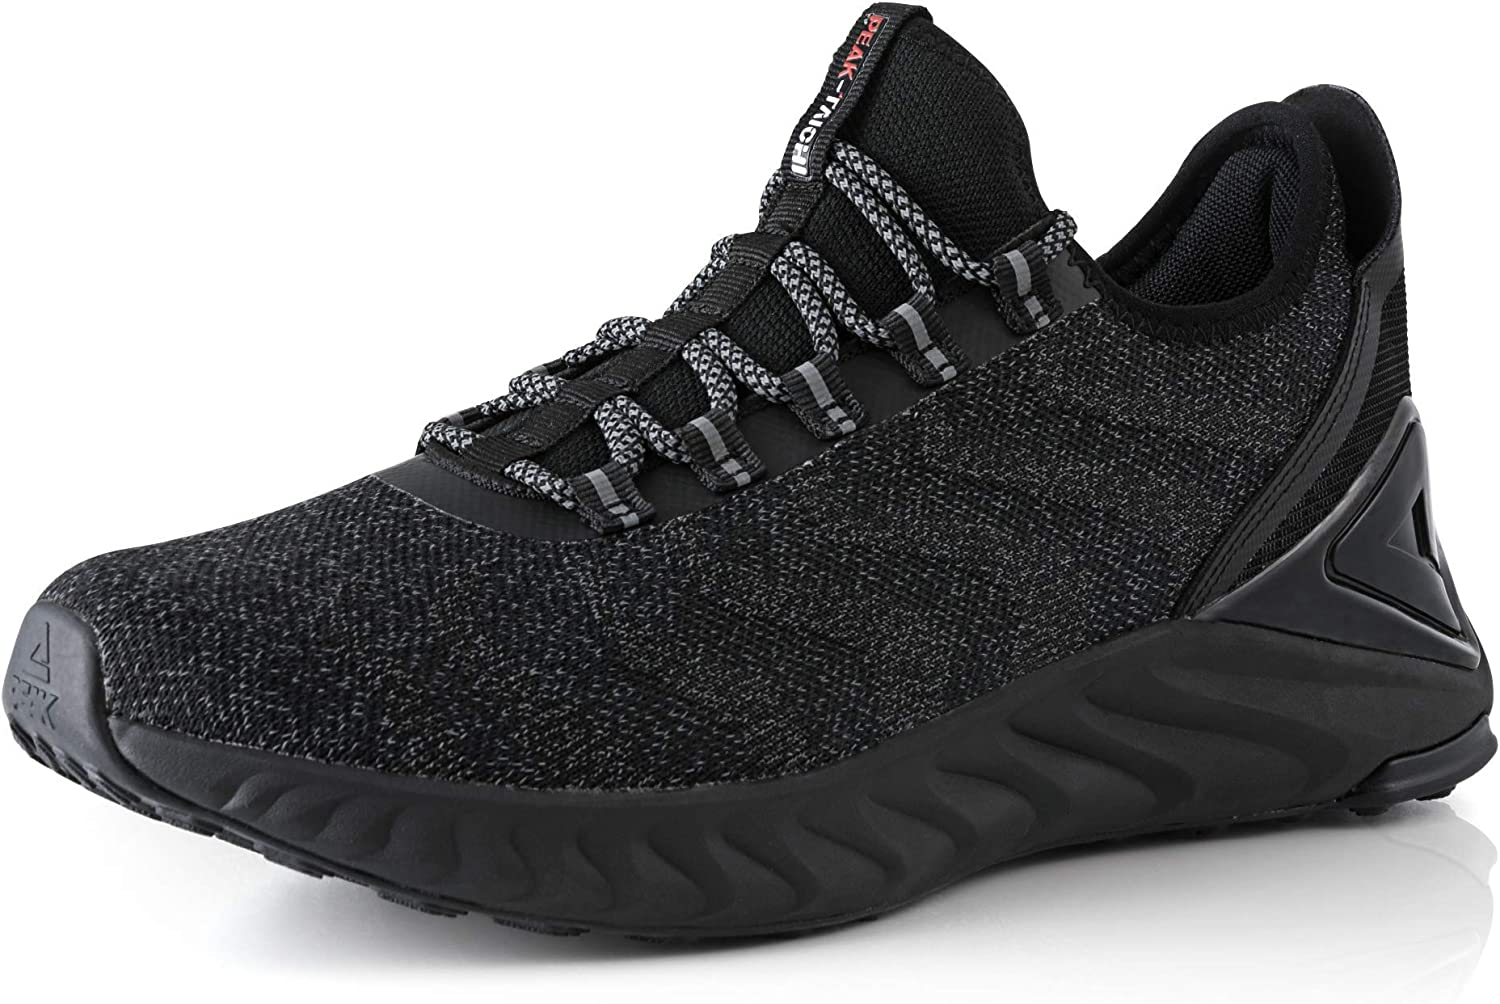 PEAK Milwaukee Mall Mens Comfortable Running Shoes C Taichi King Smart Adaptive Inventory cleanup selling sale